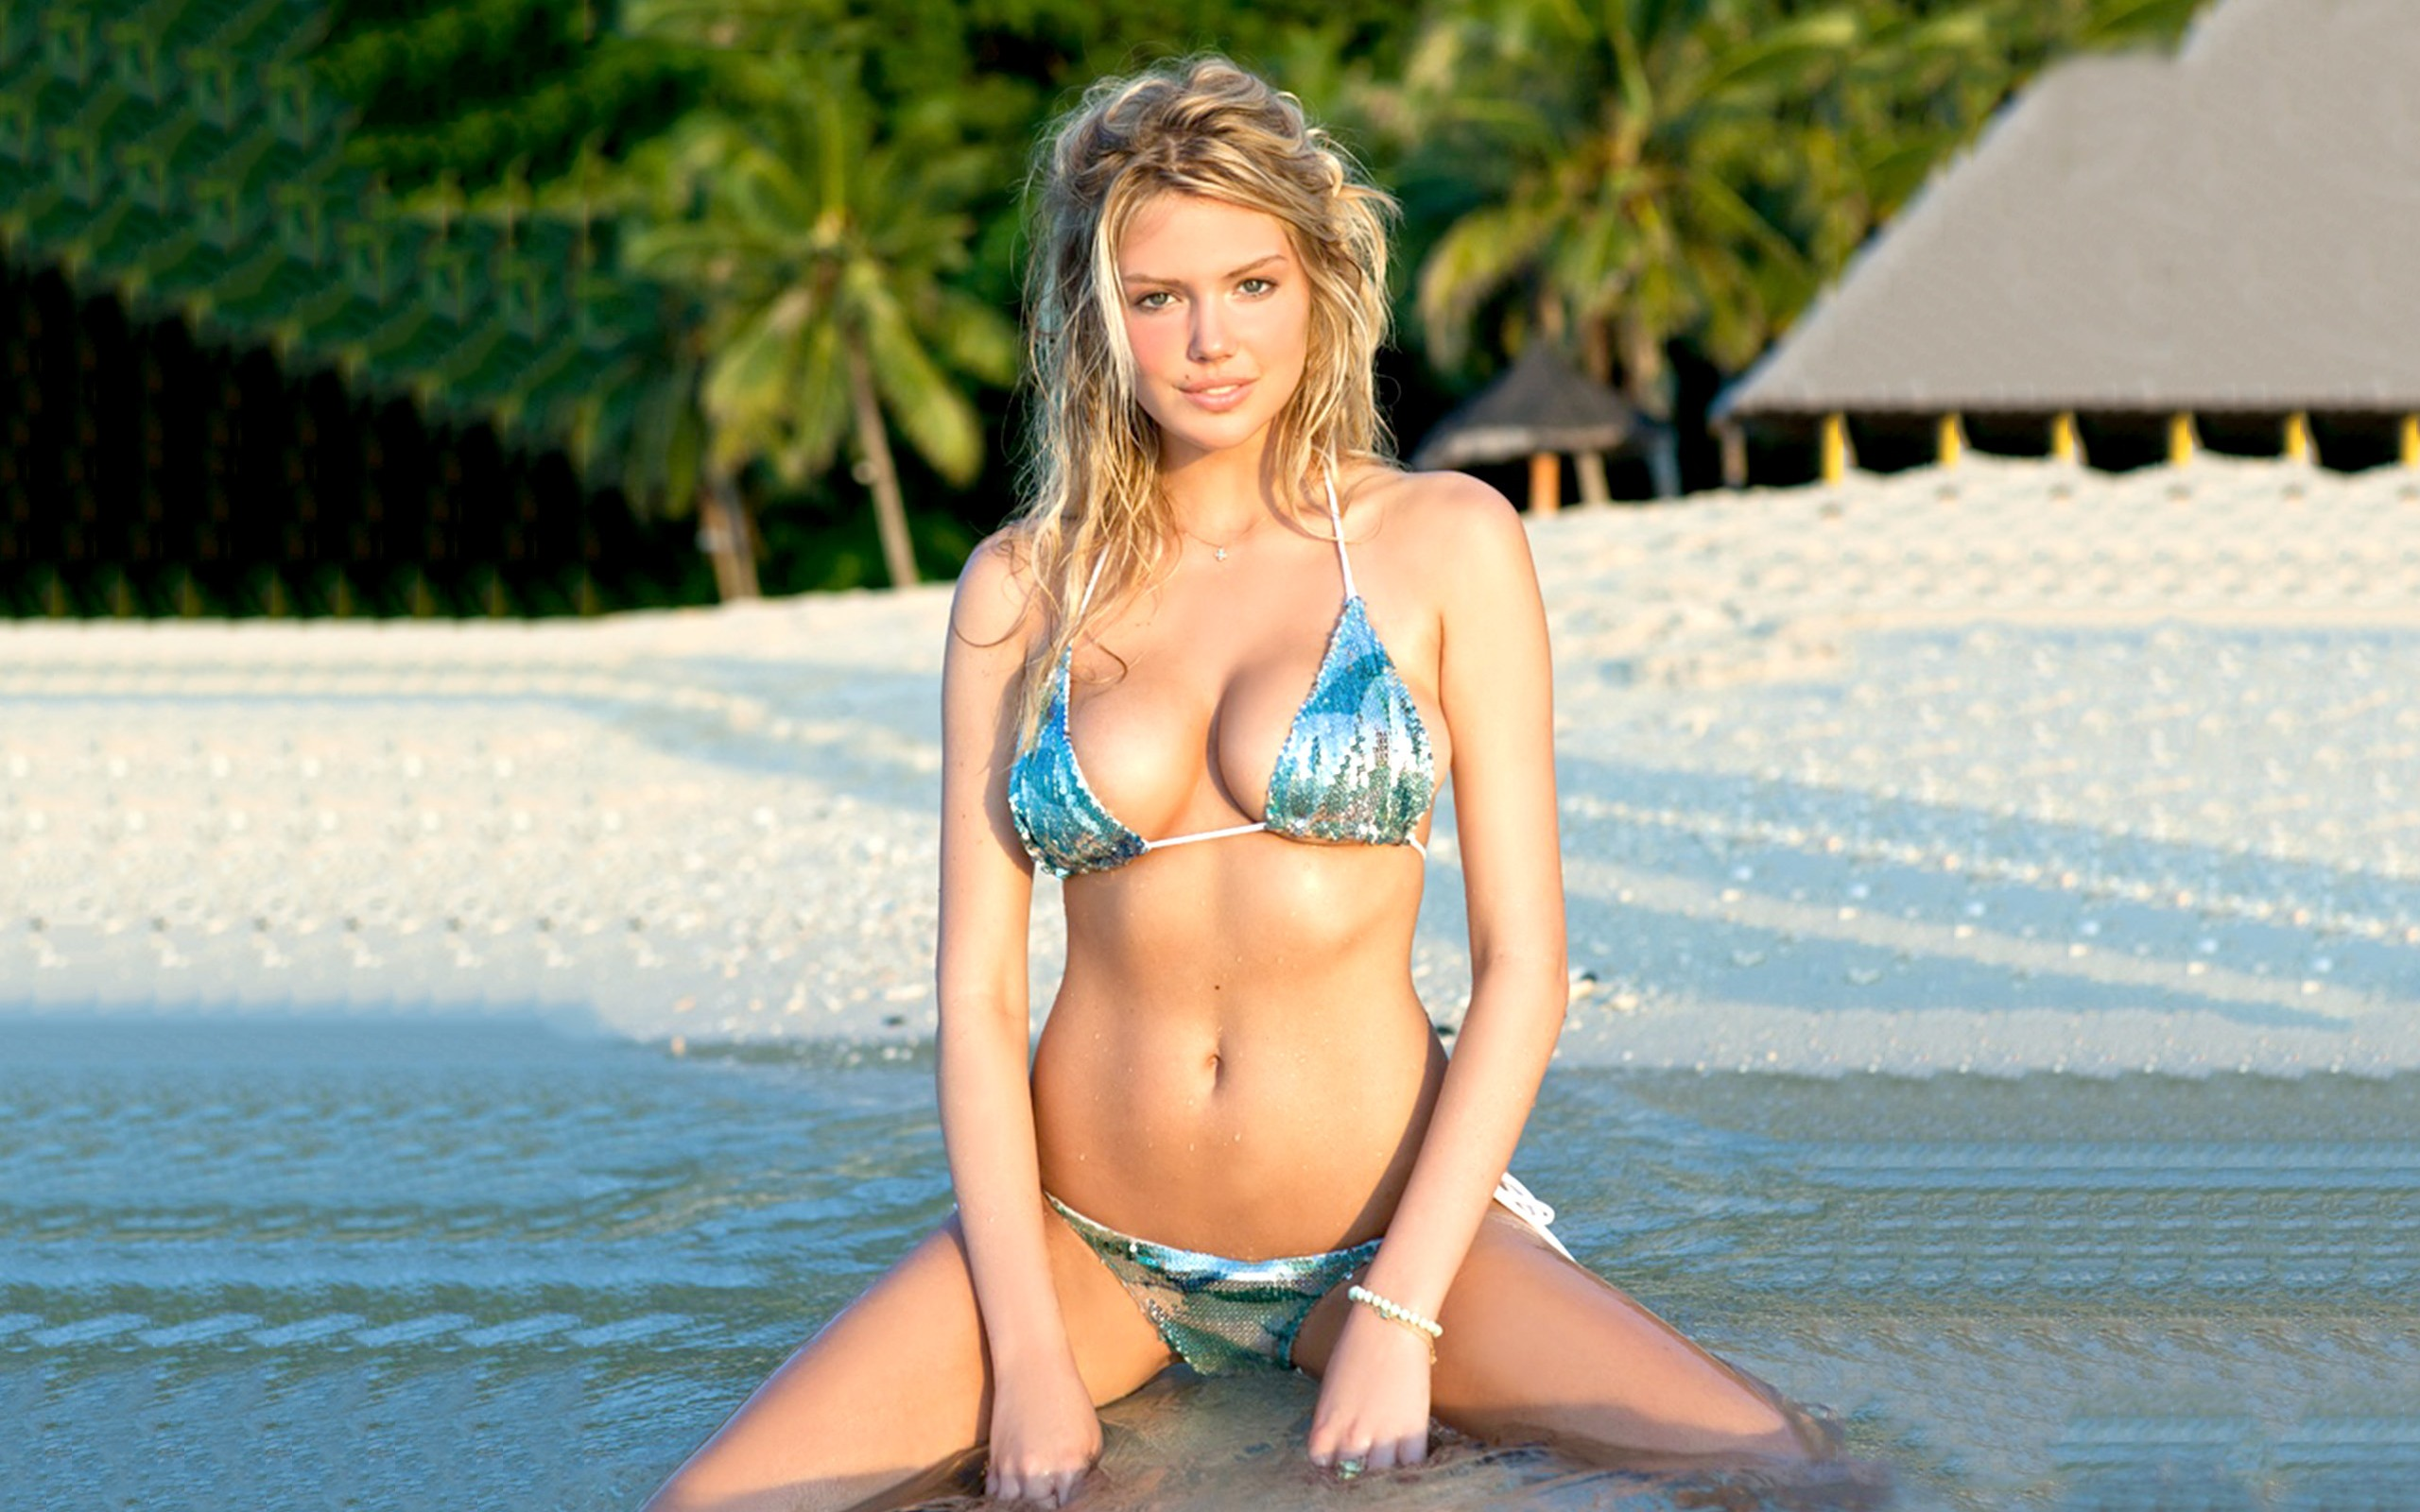 Kate upton wallpapers high resolution and quality download kate upton photos voltagebd Gallery